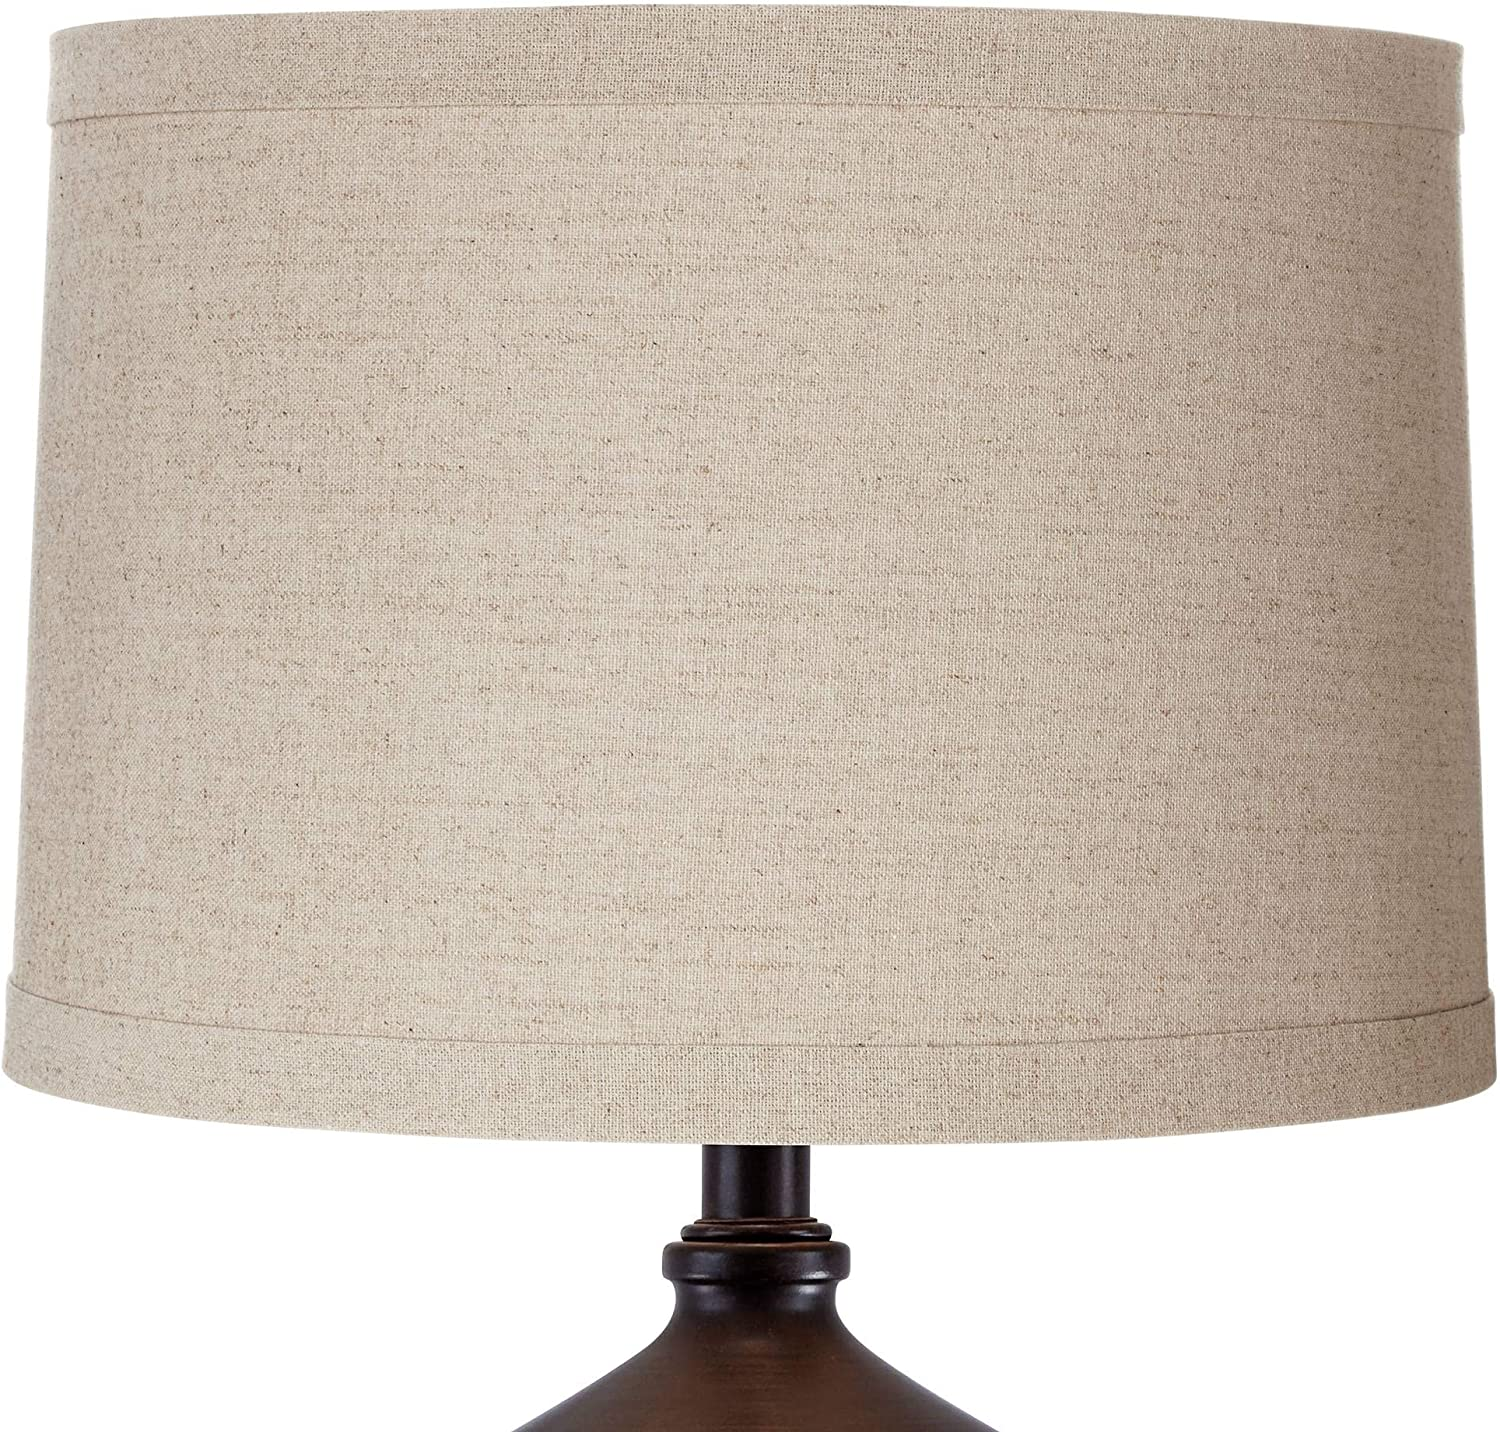 Springcrest Natural Linen Drum Shade 15x16x11 Spider Springcrest Linen Lamp Shade Amazon Com